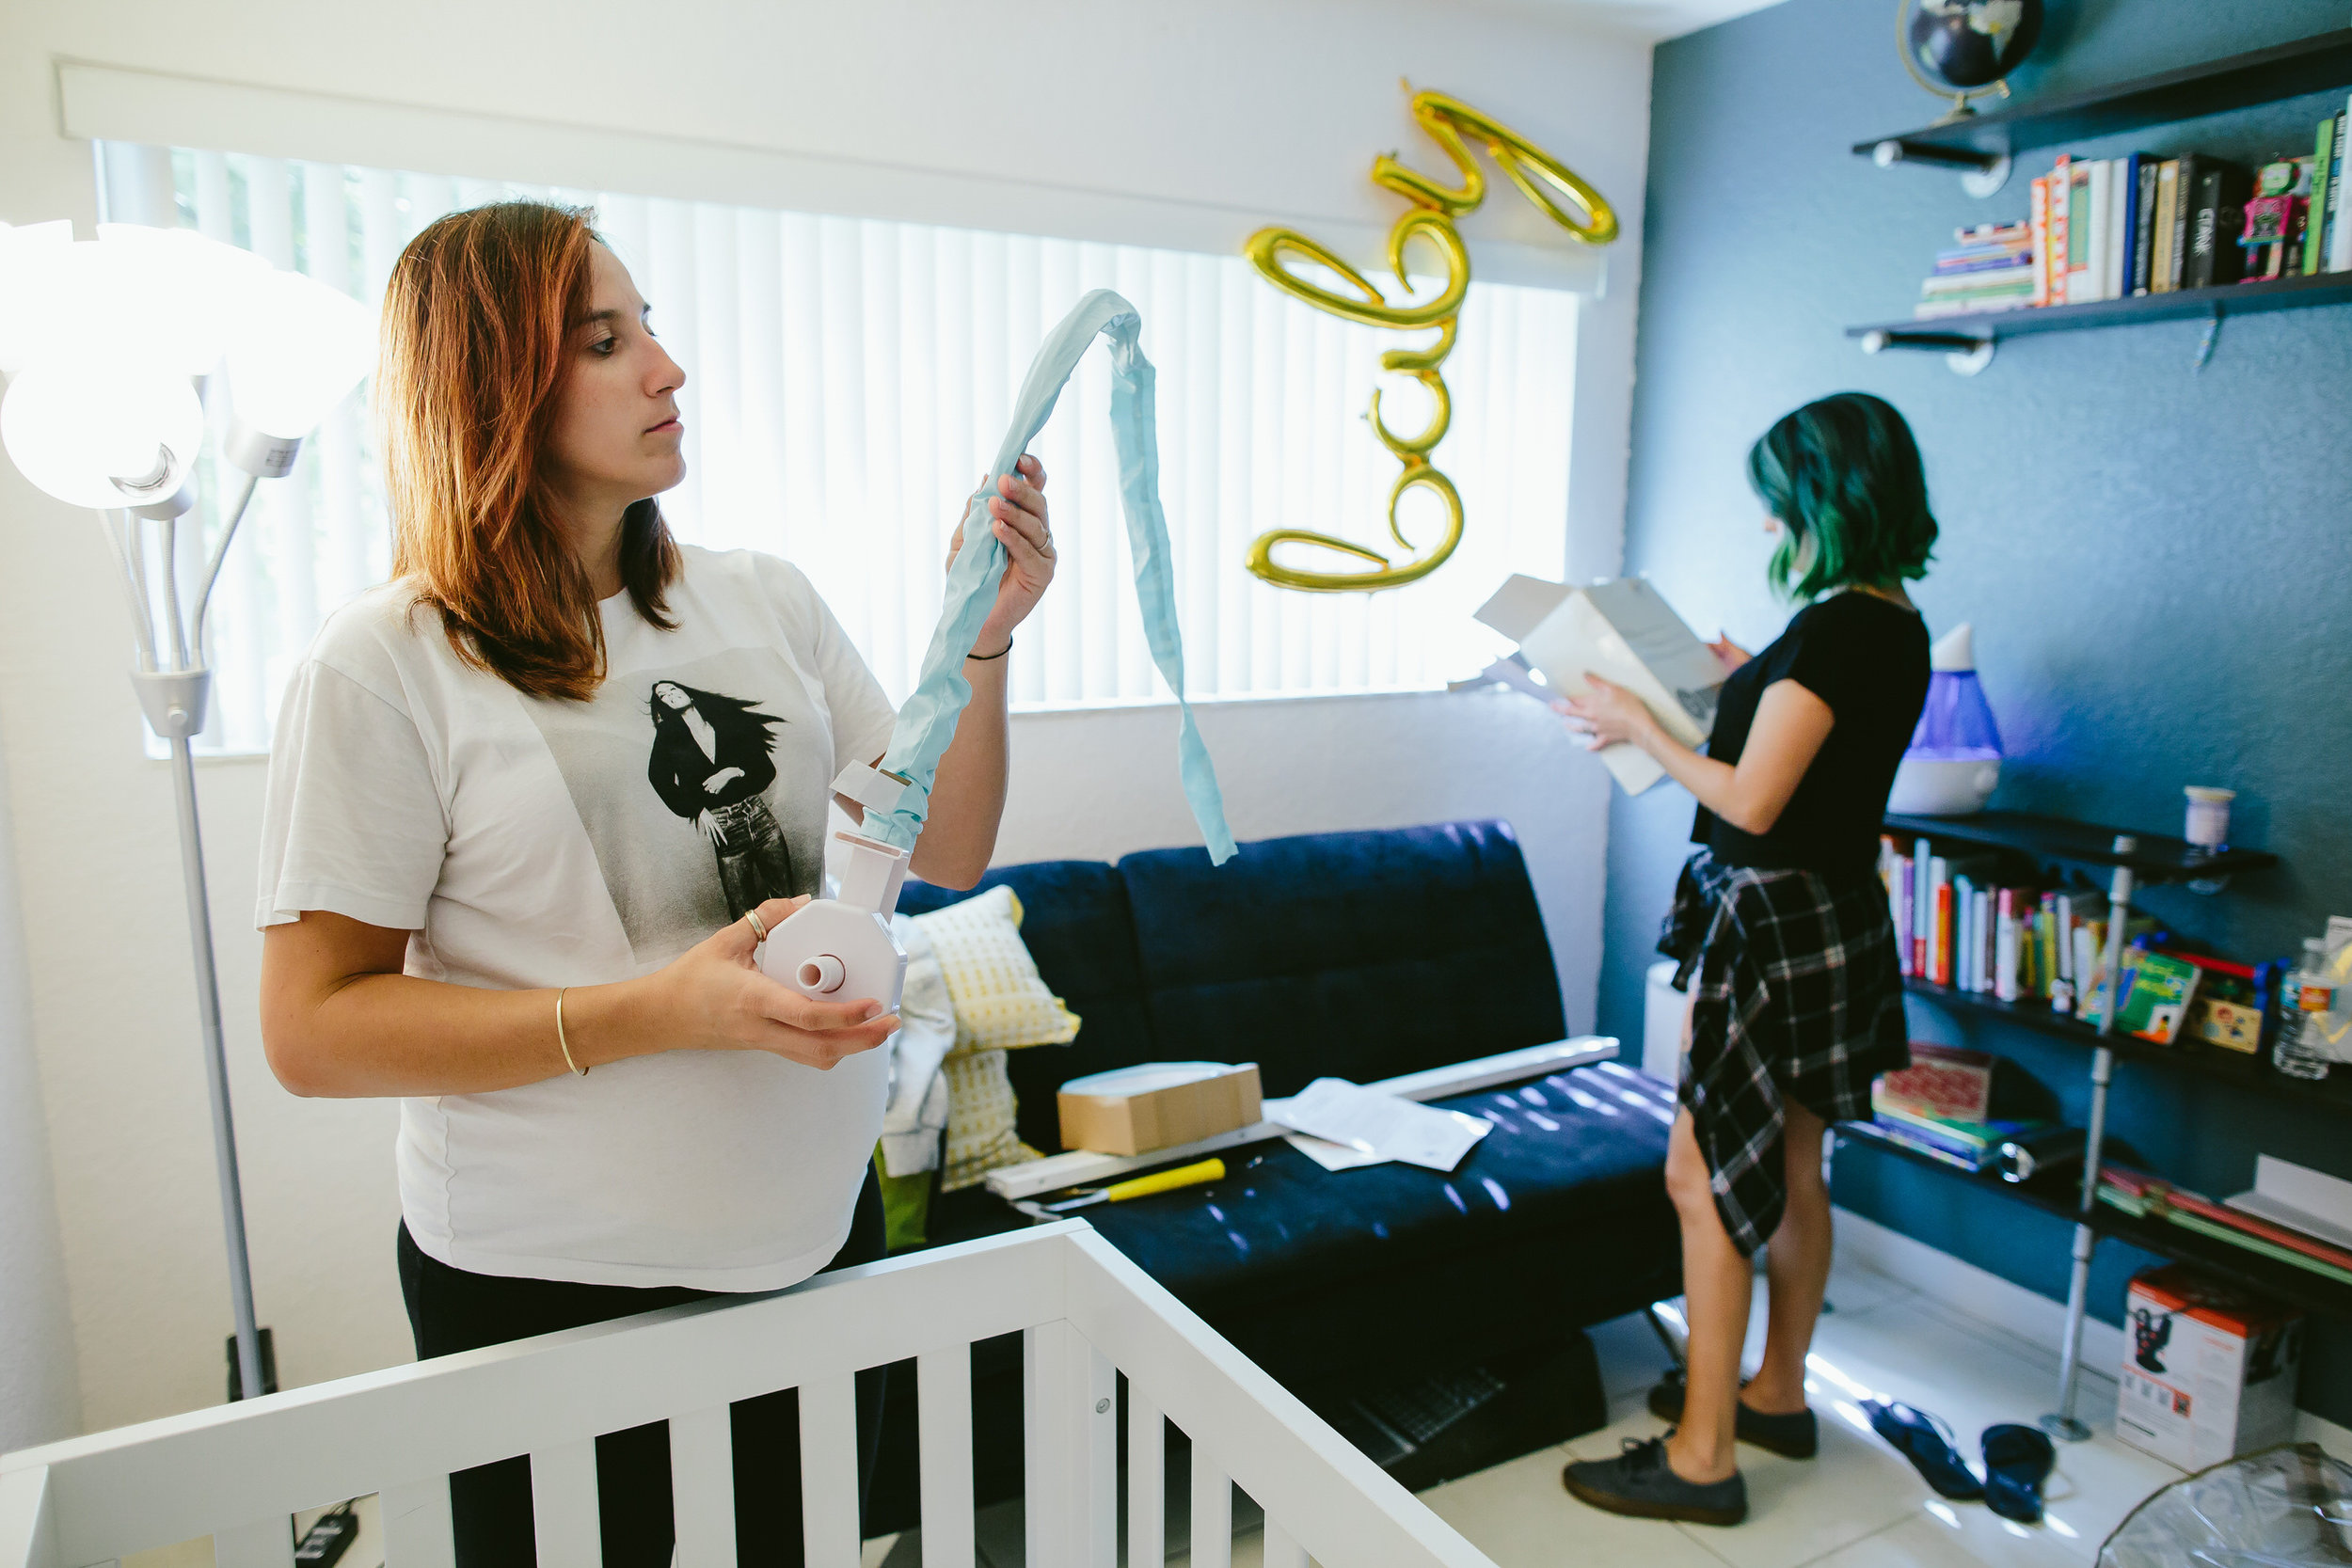 documentary_pregnancy_session_miami_florida_steph_lynn_photo-37.jpg